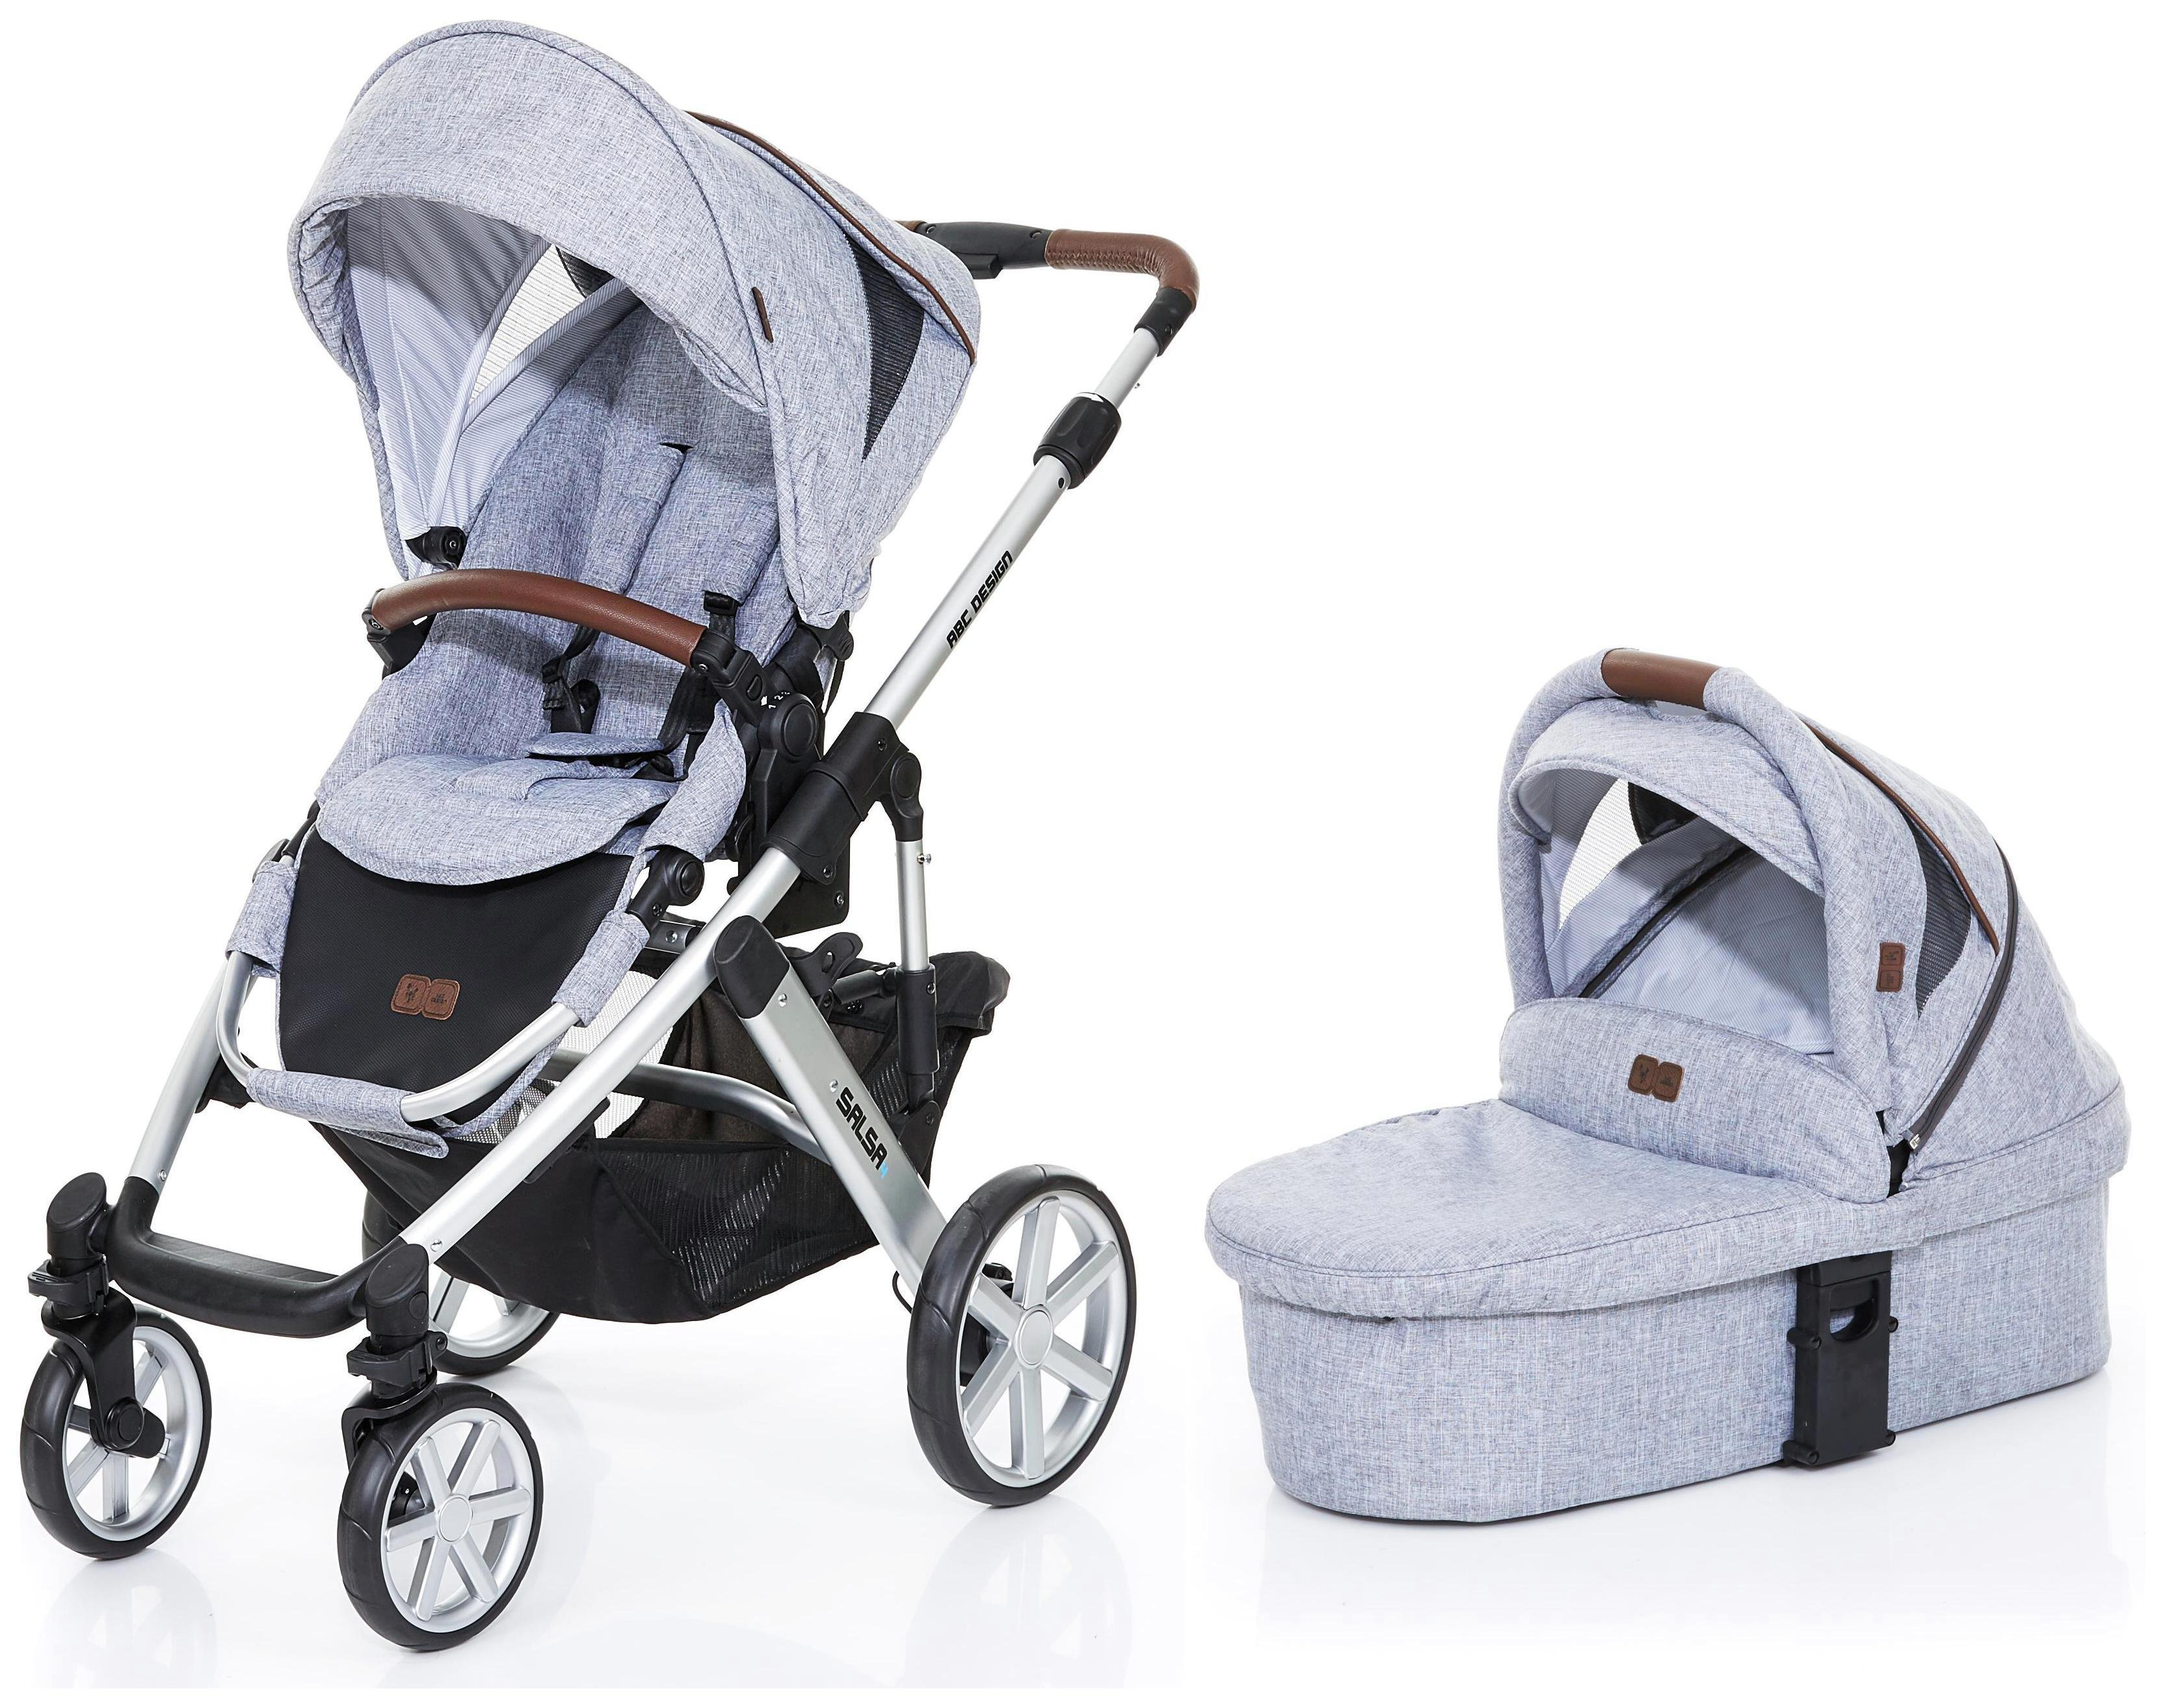 Image of ABC Design Salsa 2 in 1 Stroller & Carrycot - Graphite Grey